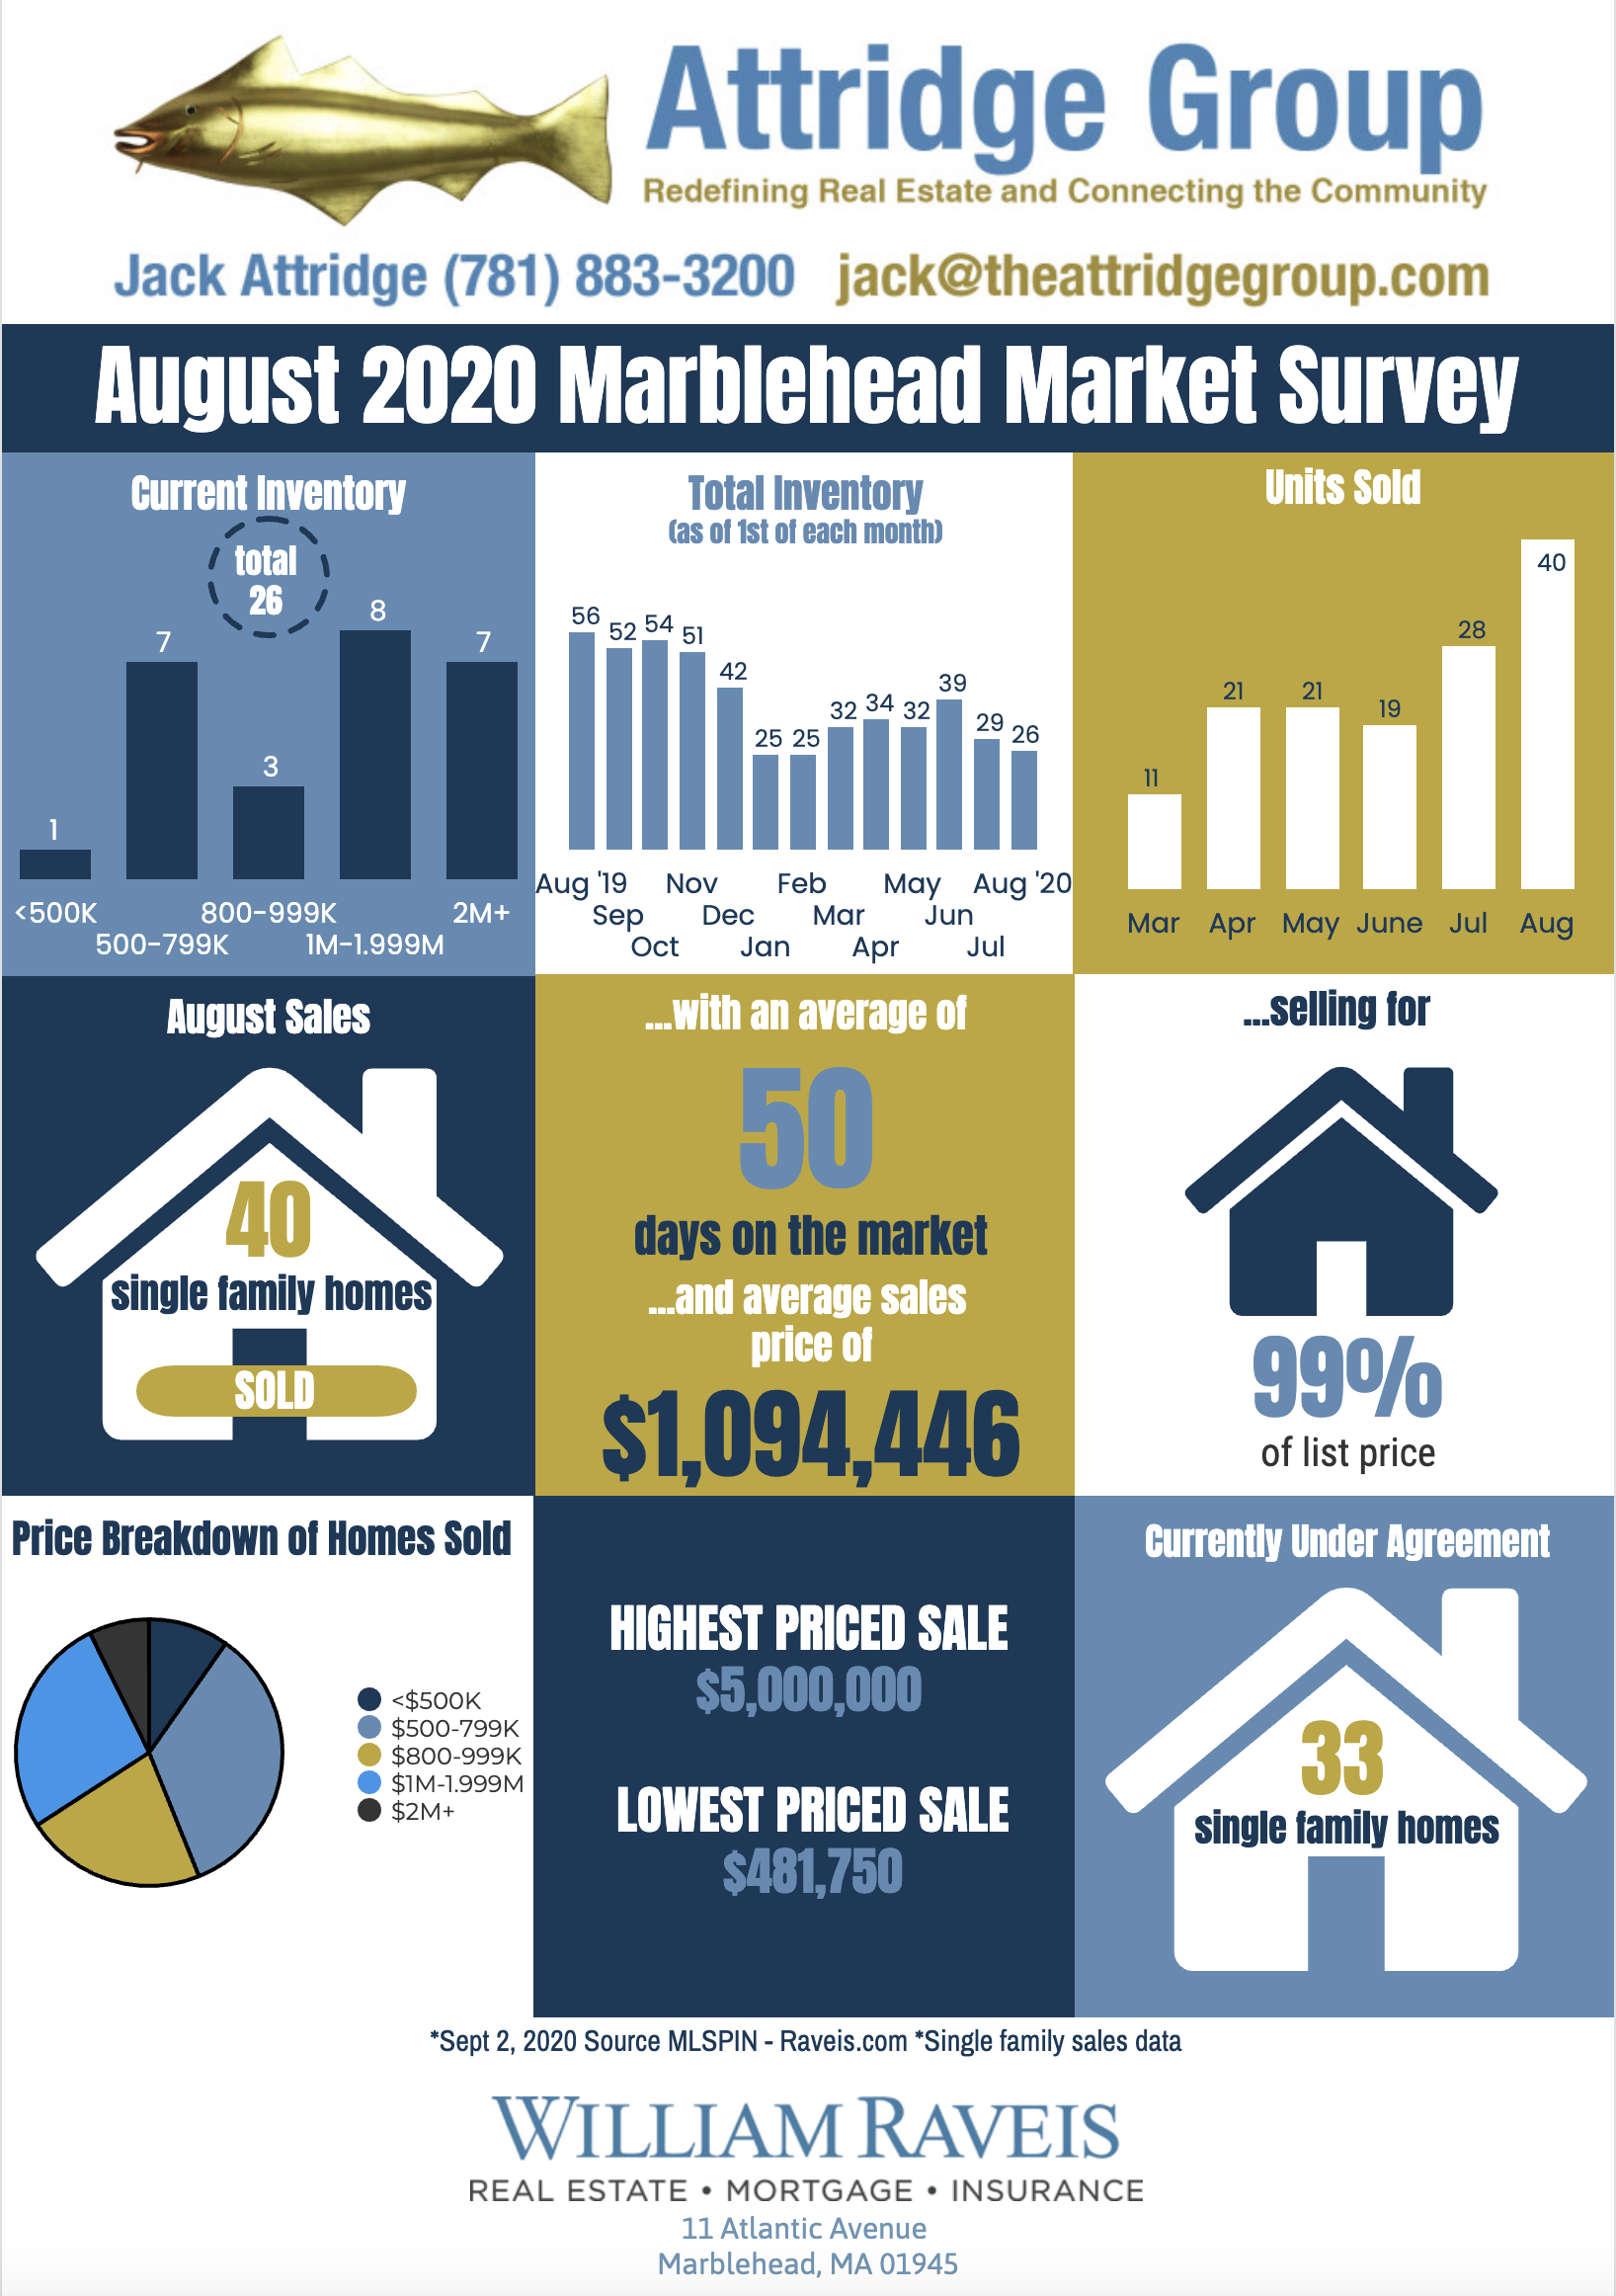 August20MarketSurvey